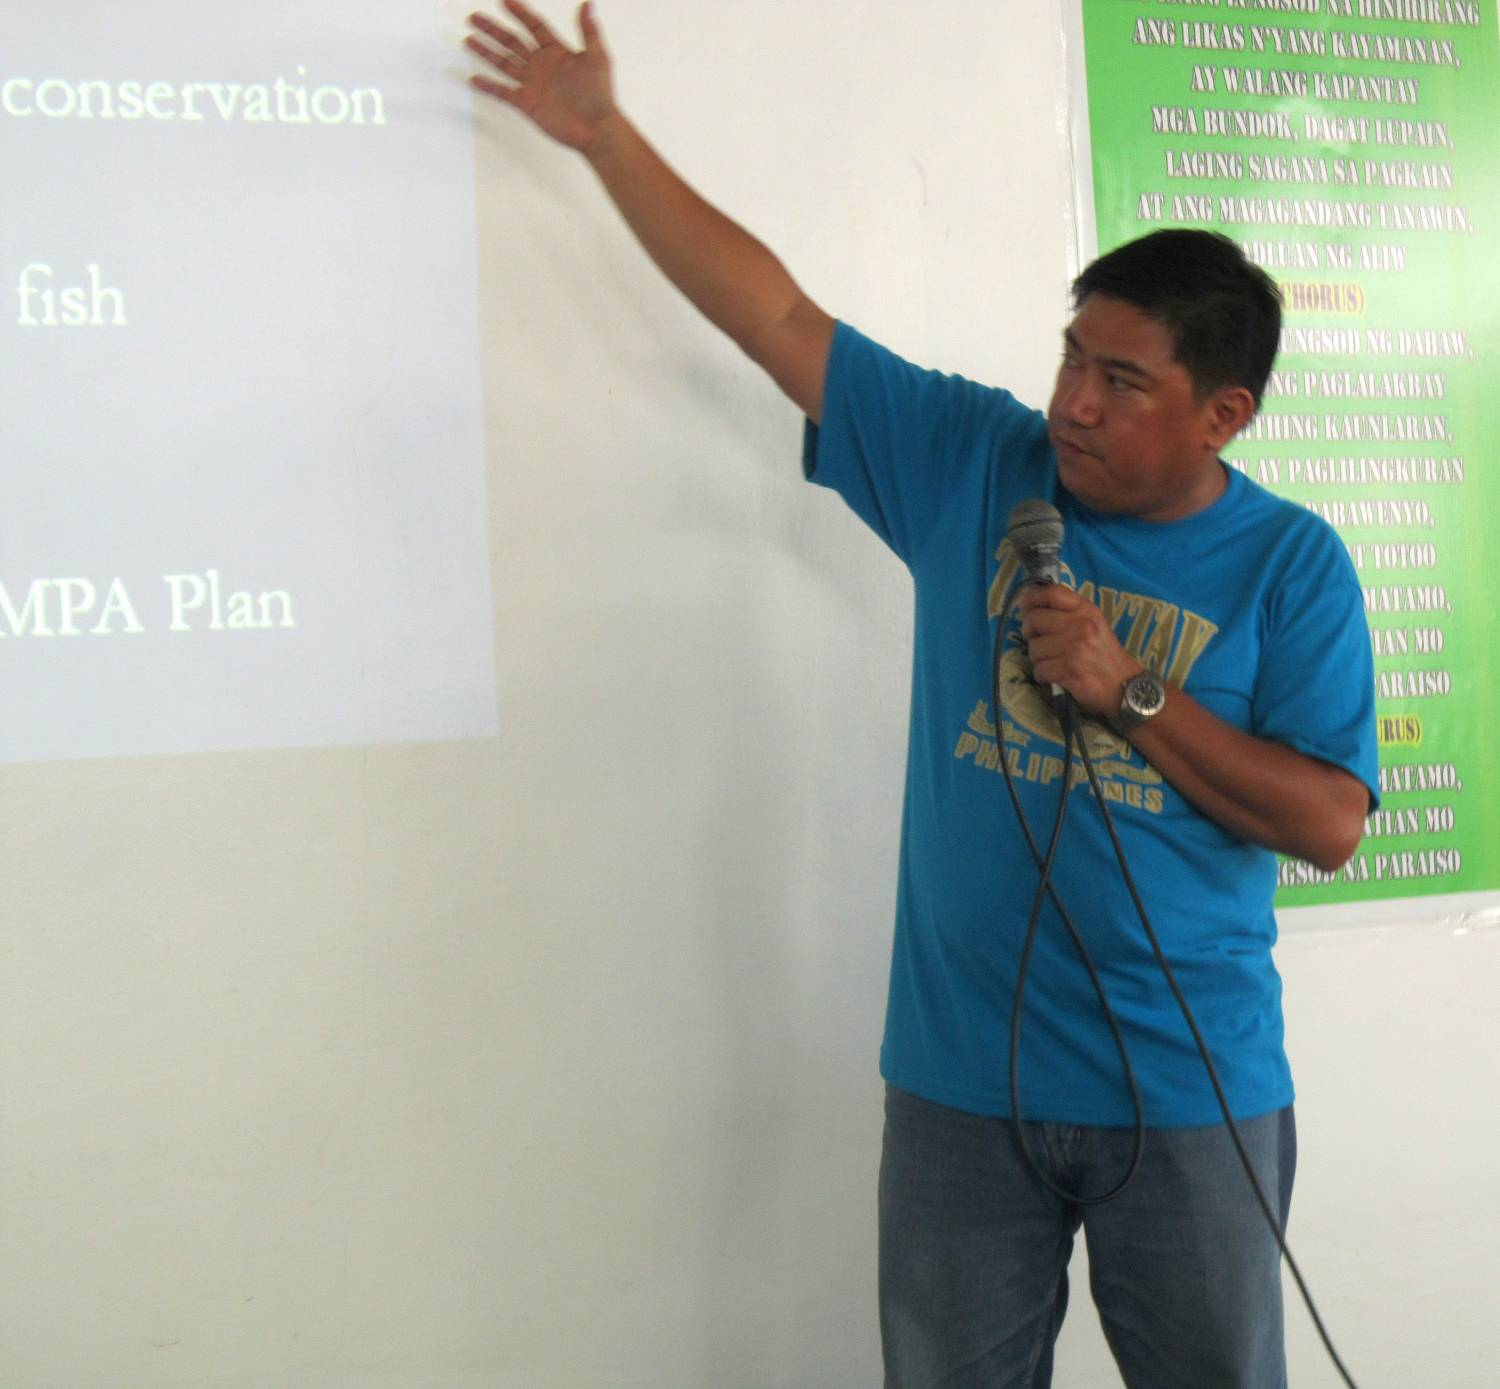 It S Always Confusing When It Comes To House Plan While: INTEGRATED COASTAL MGT. PLAN CONSULTATION!